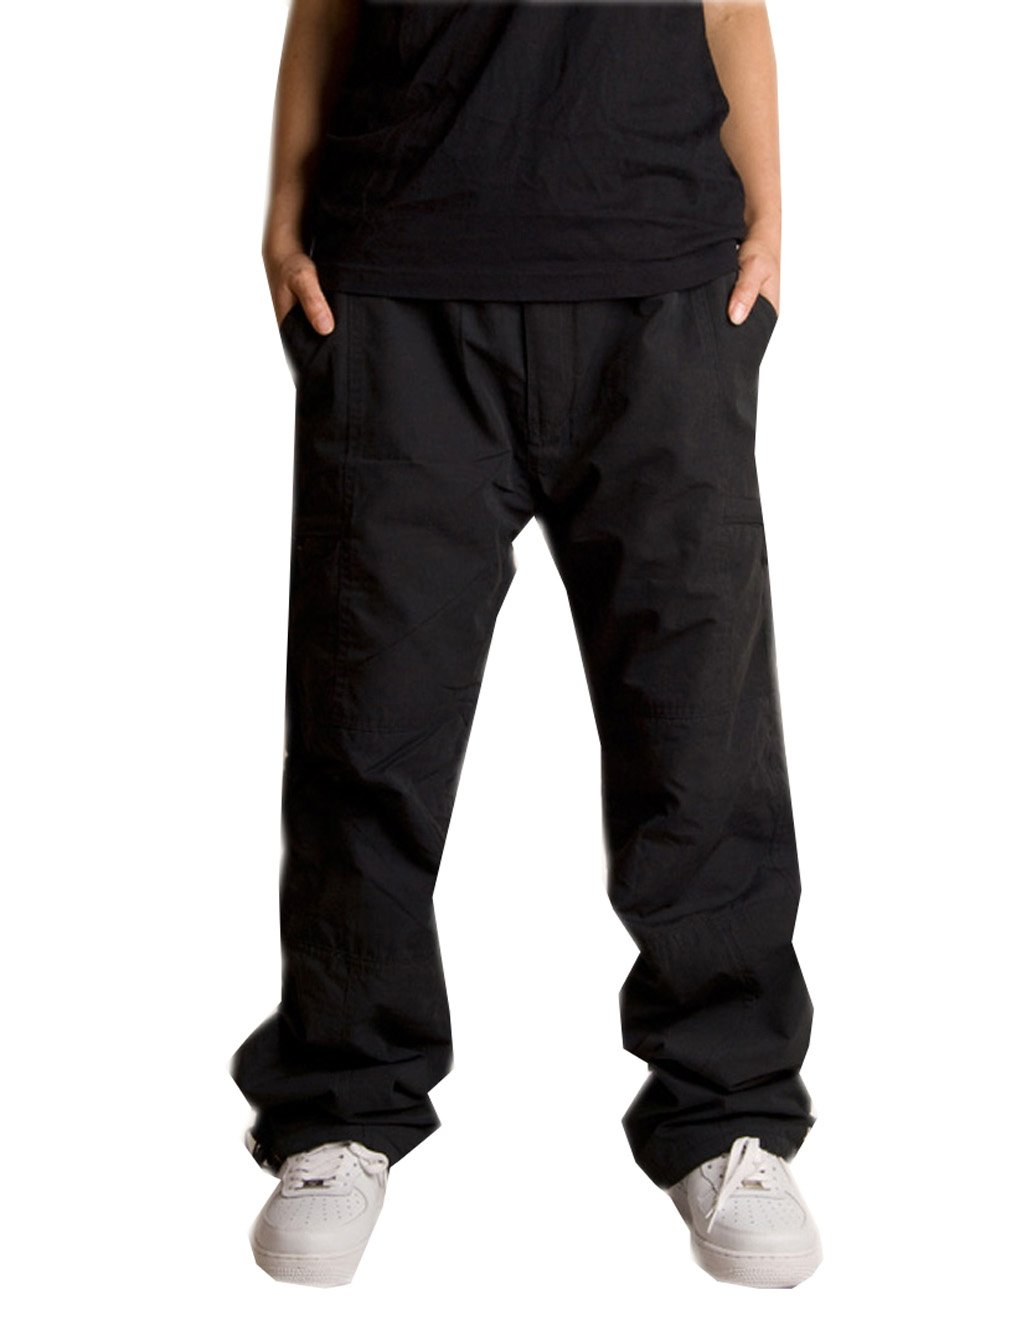 METERDE Men's Cargo Pocket Relax Fit Lined Winter Casual Sports Pants Black XL